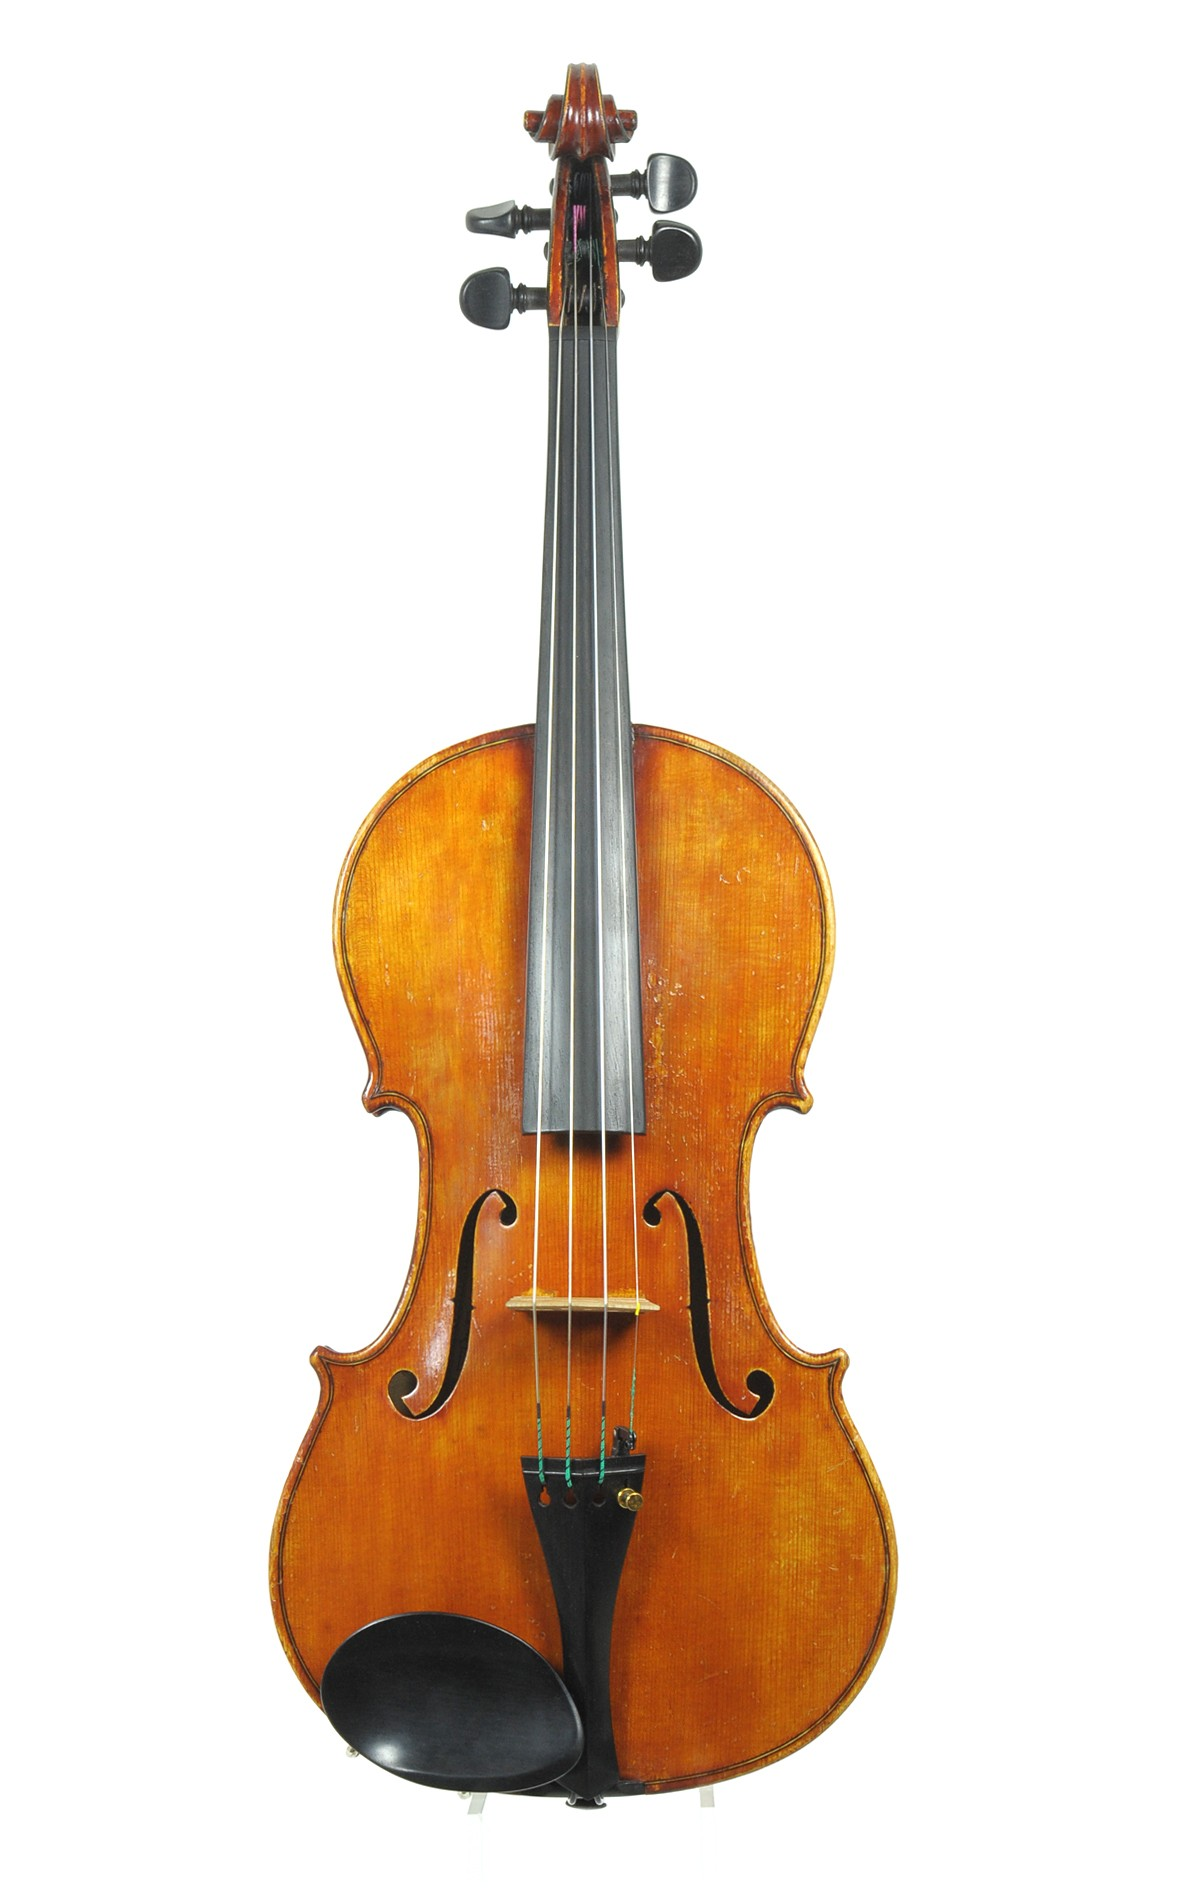 Francesco Cossu, Italian violin, 1979 - top